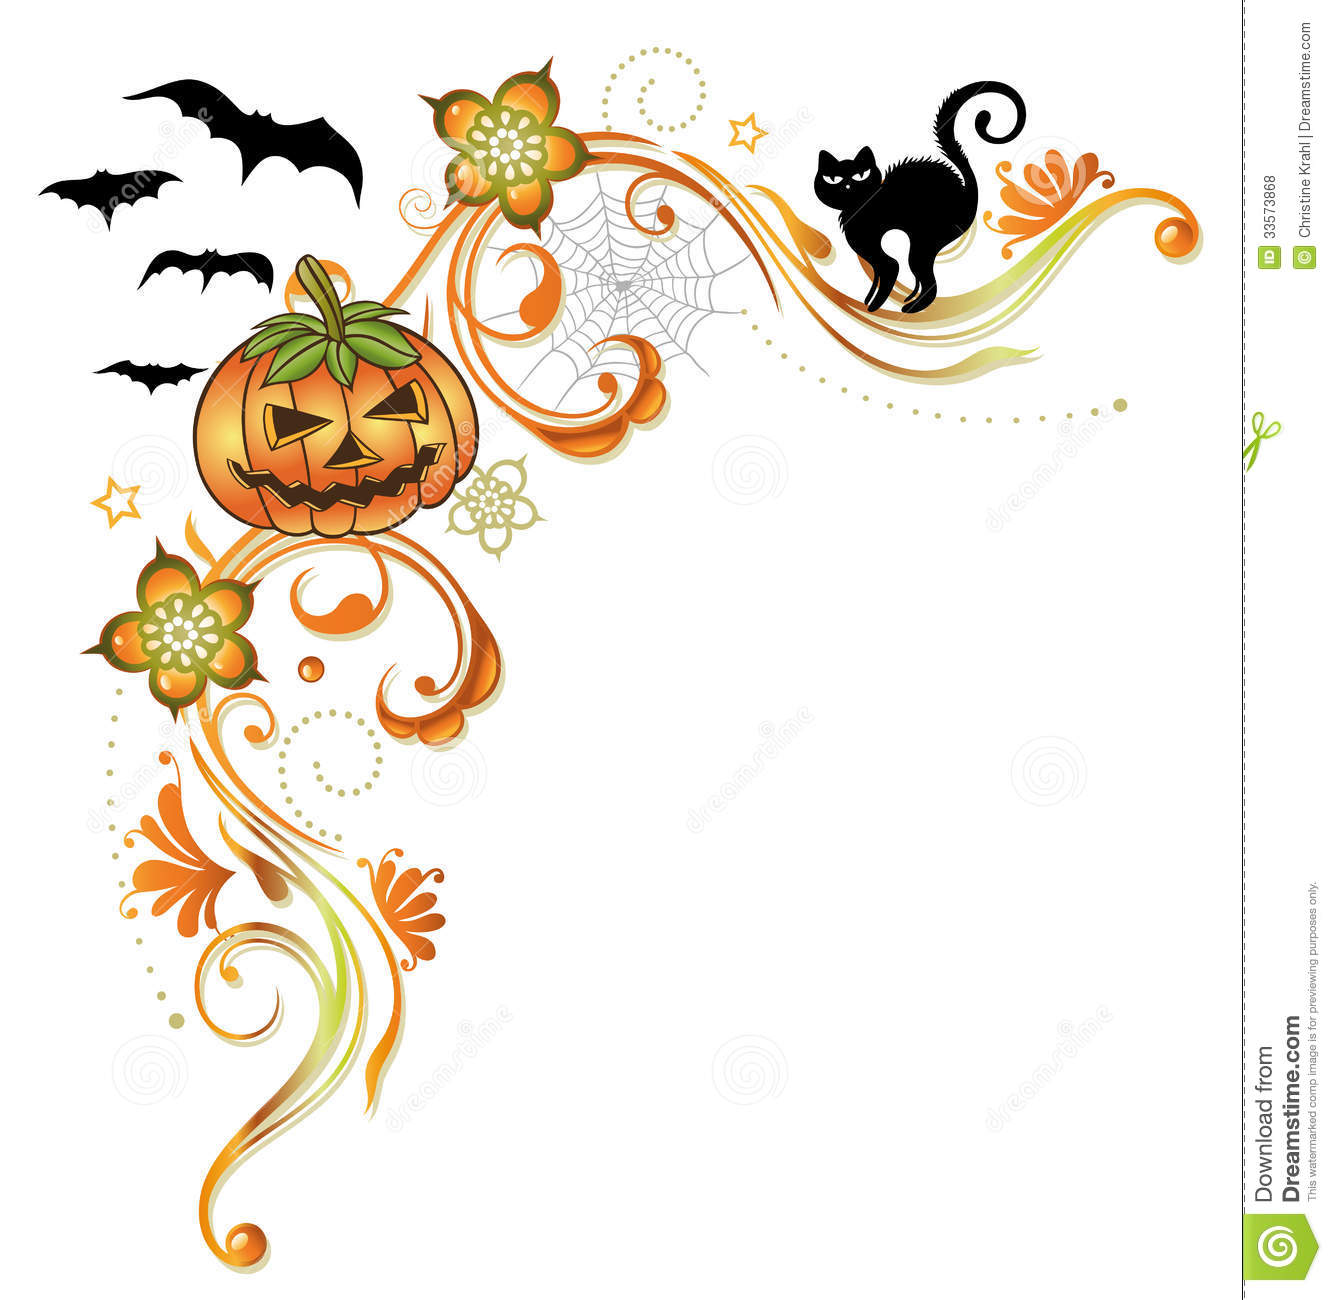 Halloween Border Royalty Free Stock Photos - Image: 33573868